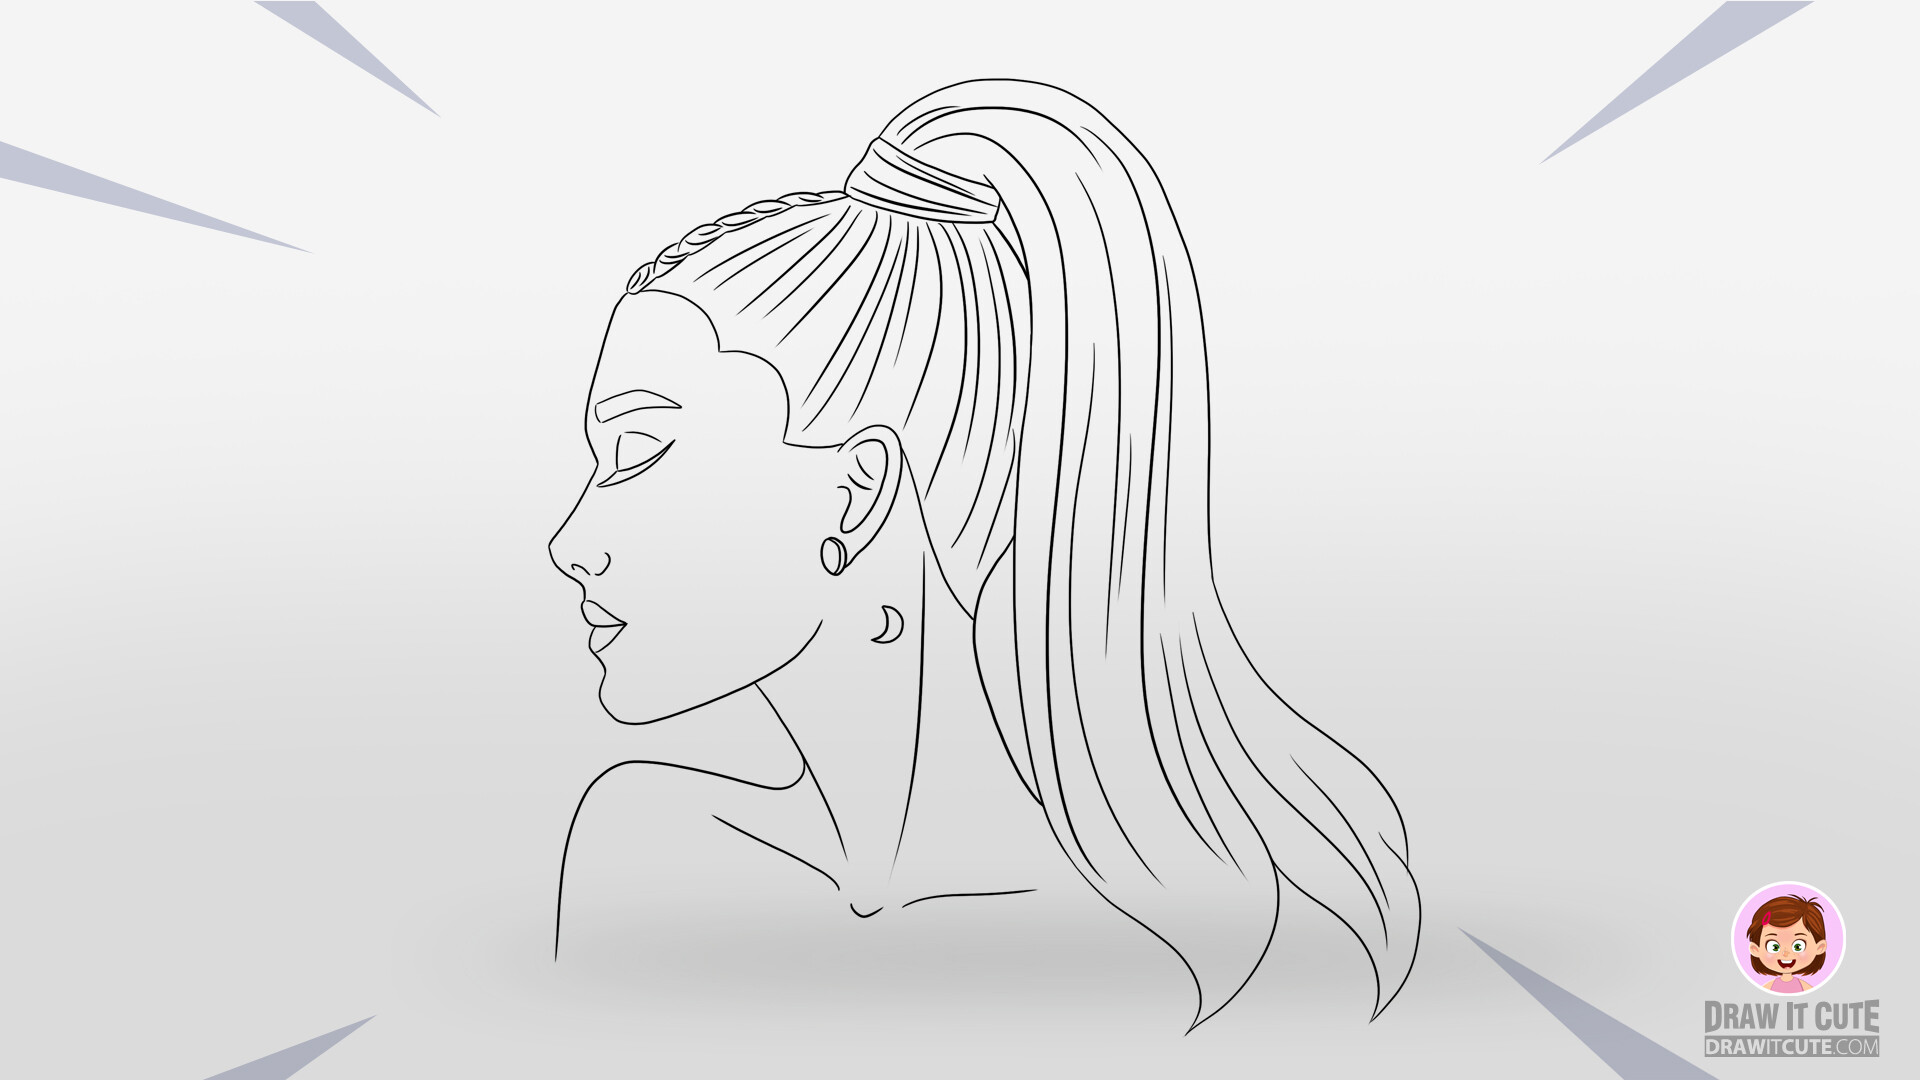 How to draw ariana grande step by step guide